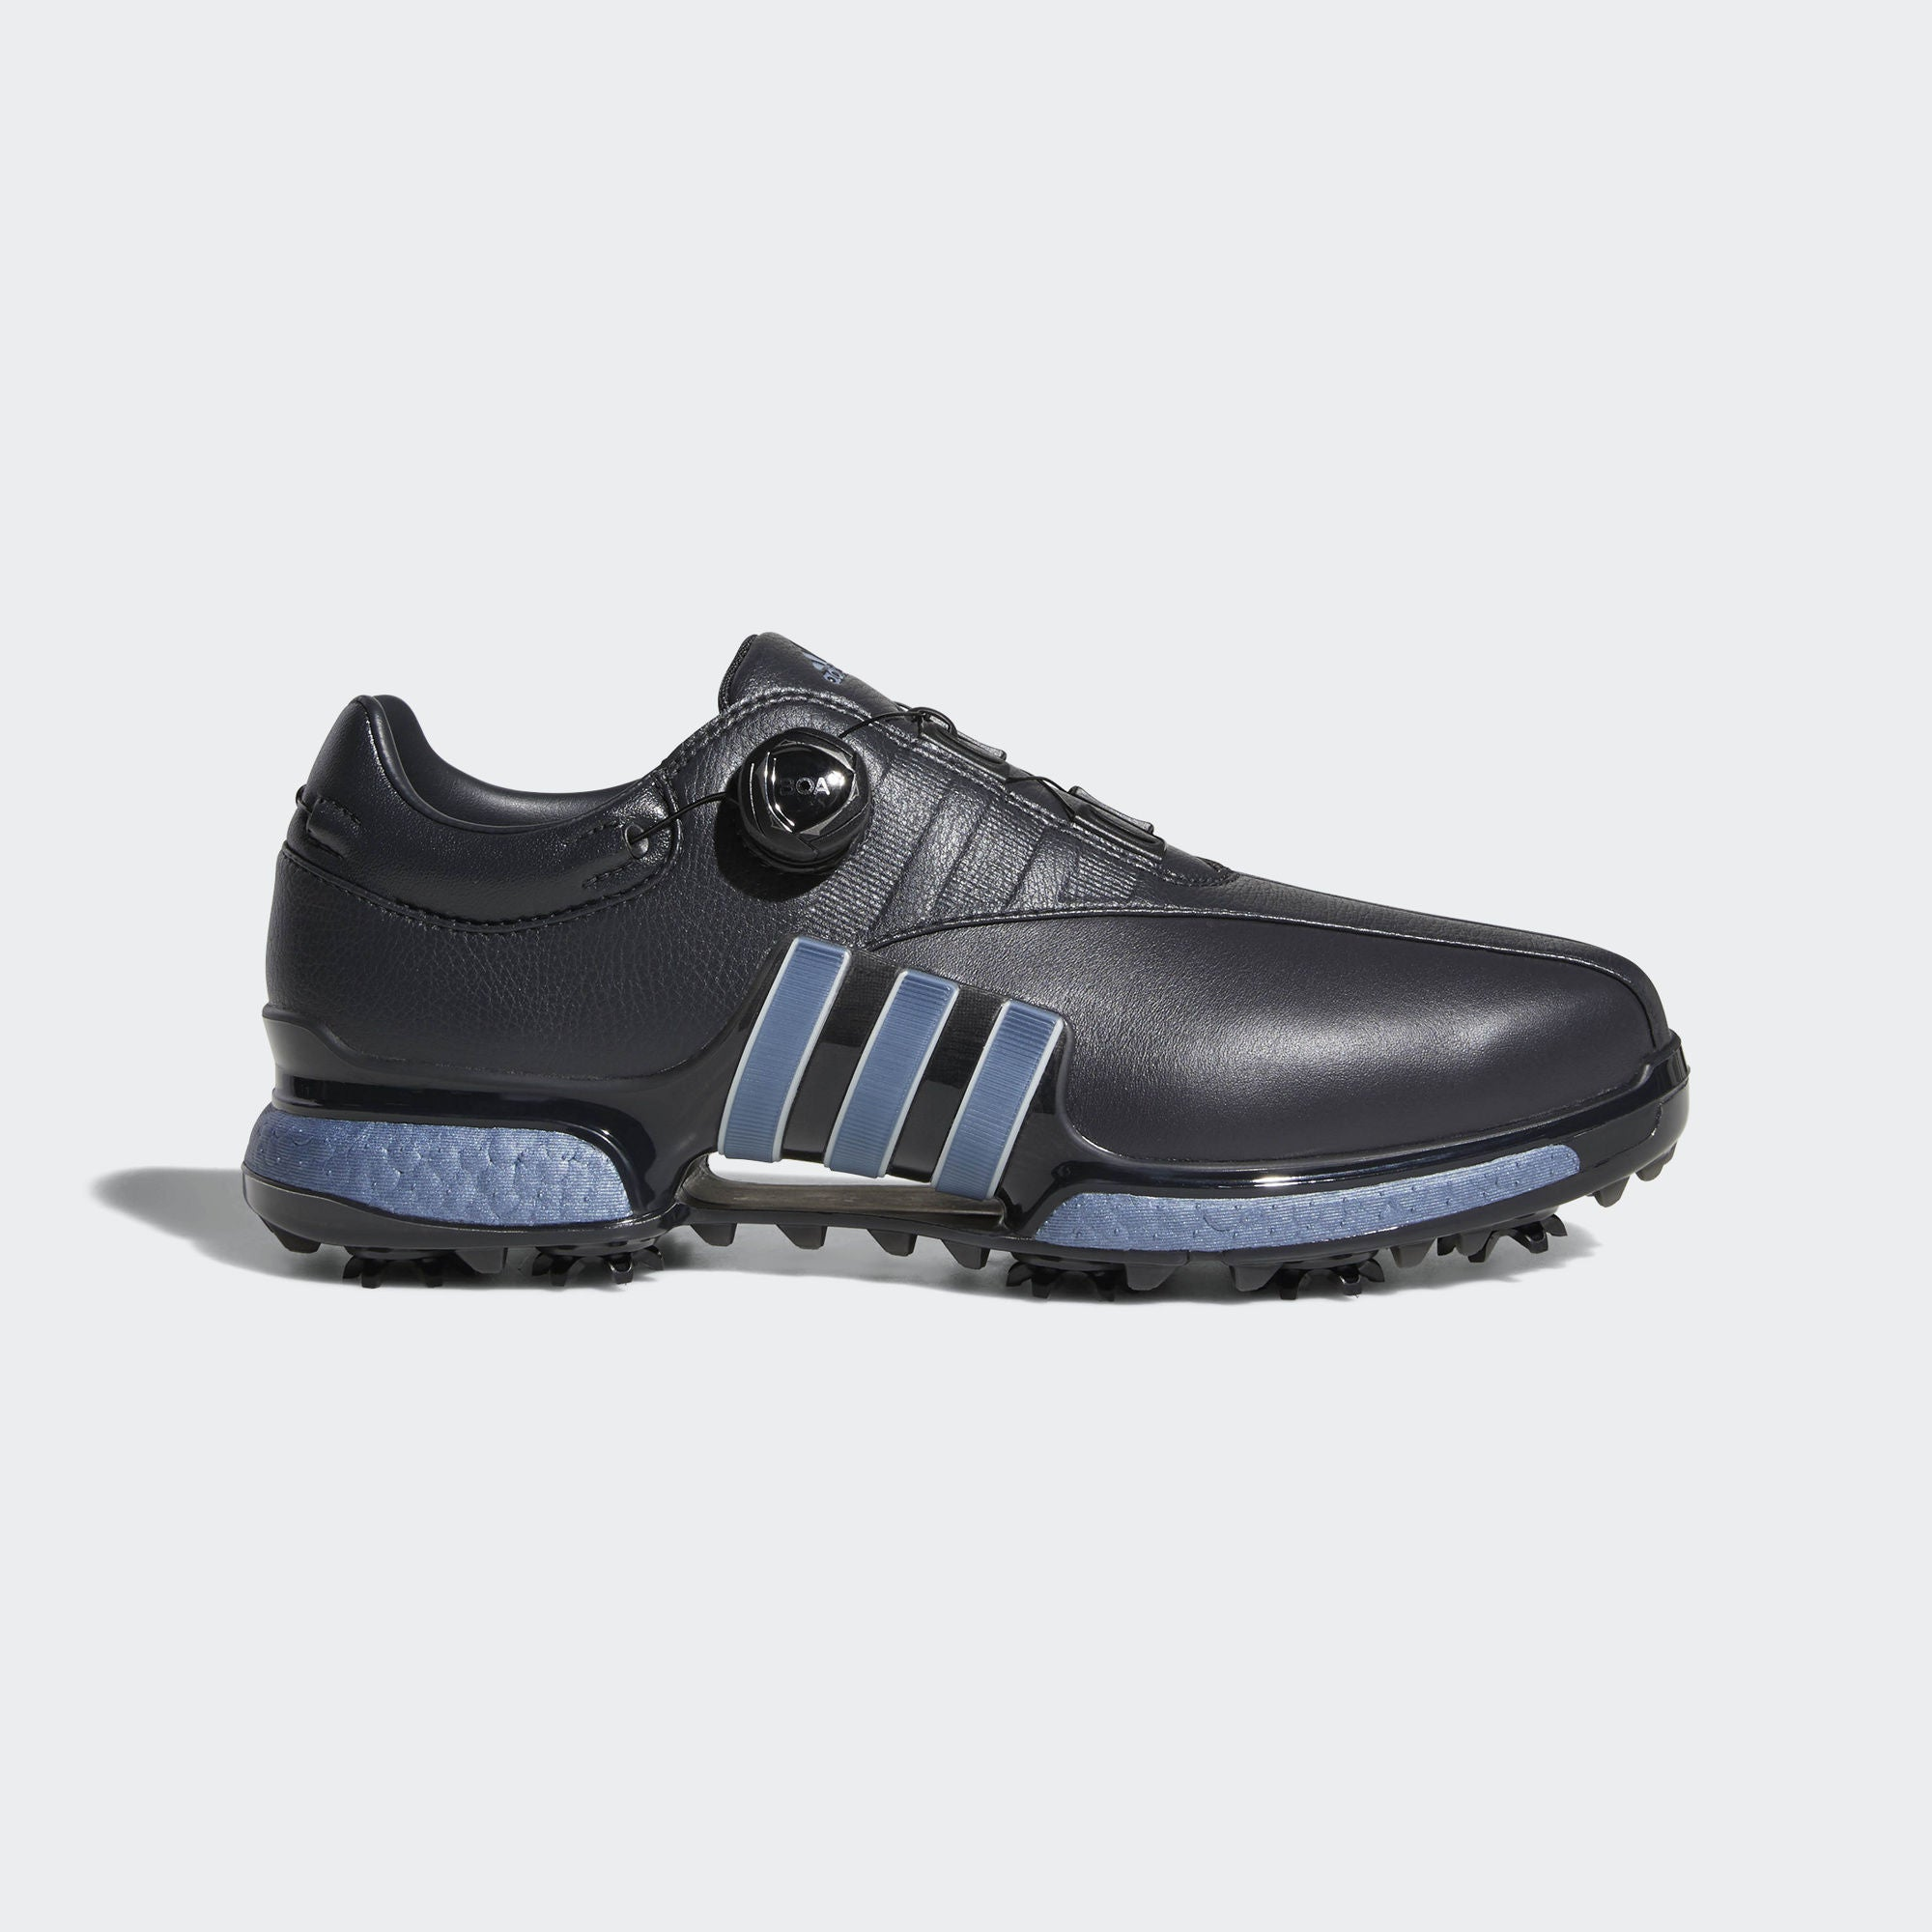 Adidas Men Golf Shoes Tour 360 EQT BOA AC8405